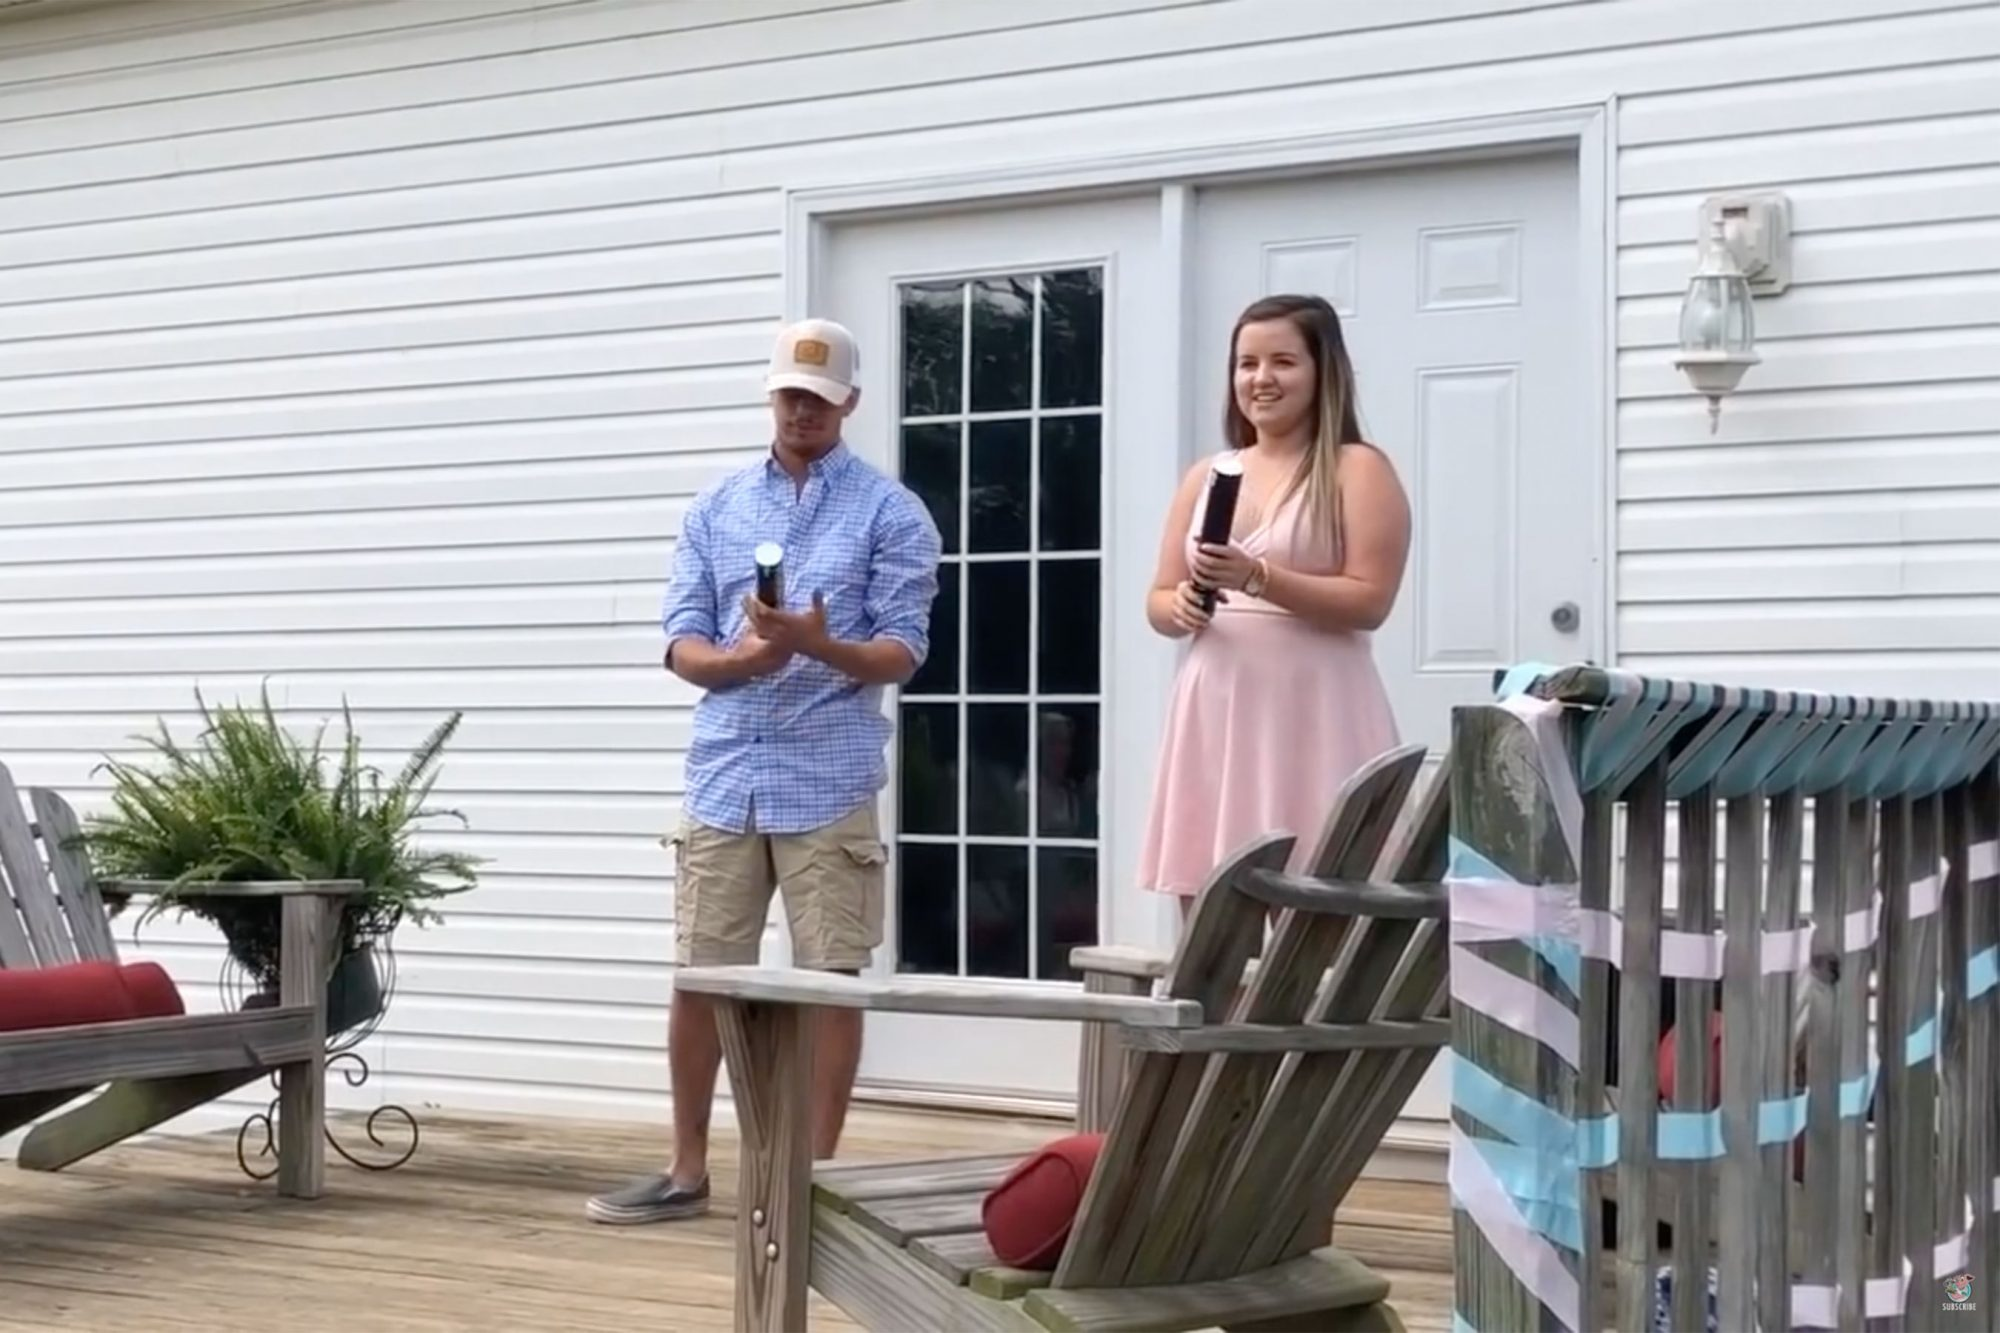 gender-reveal-goes-wrong